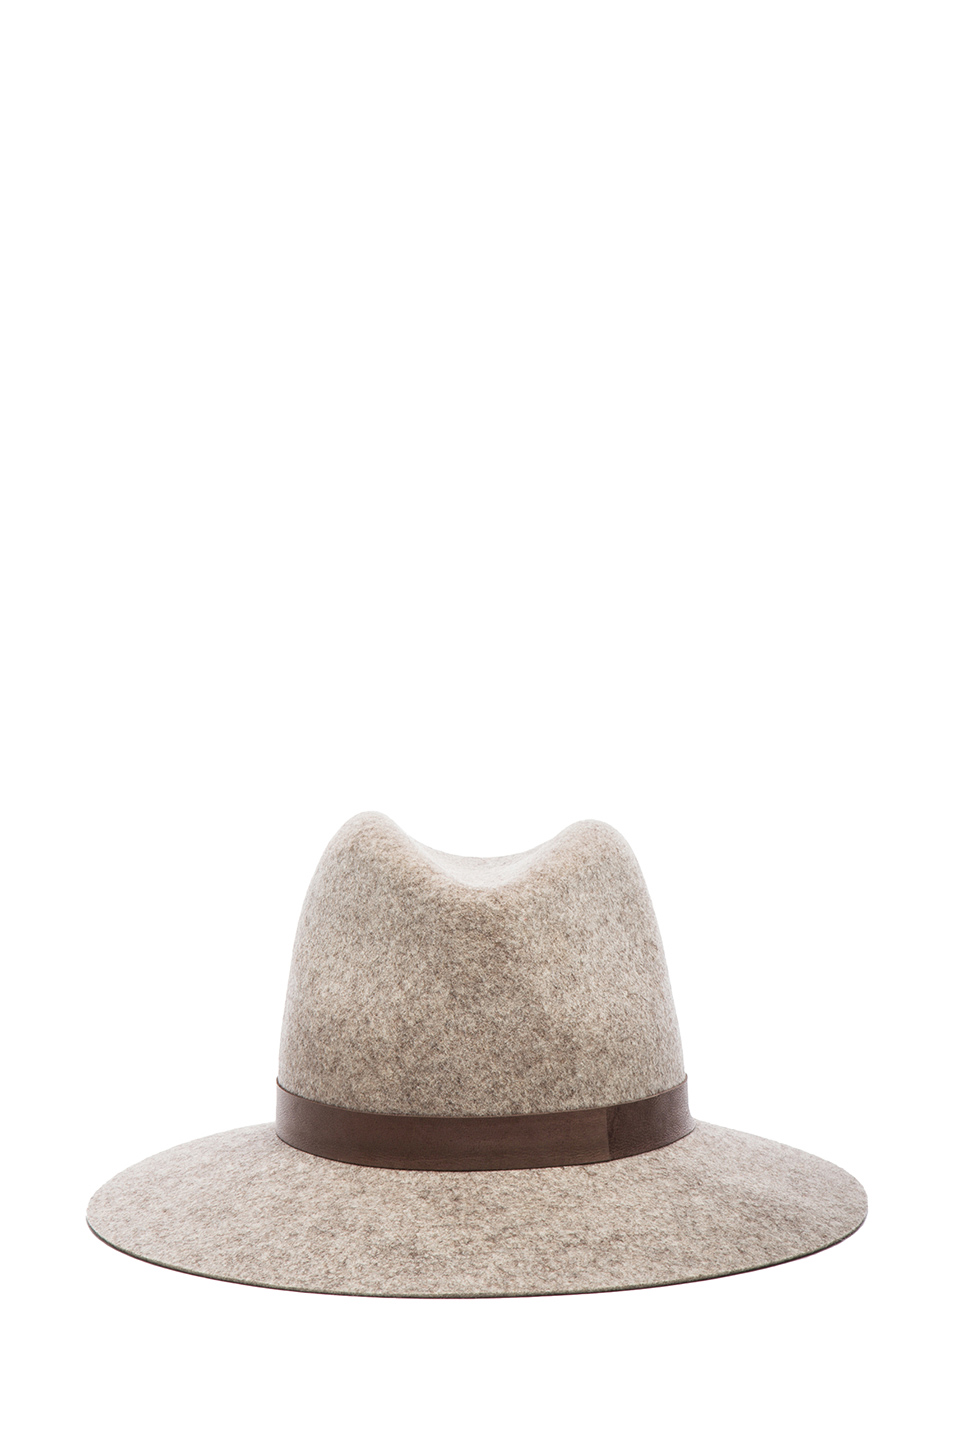 Janessa Leone|Julia Wool Felt Hat in Natural Blend